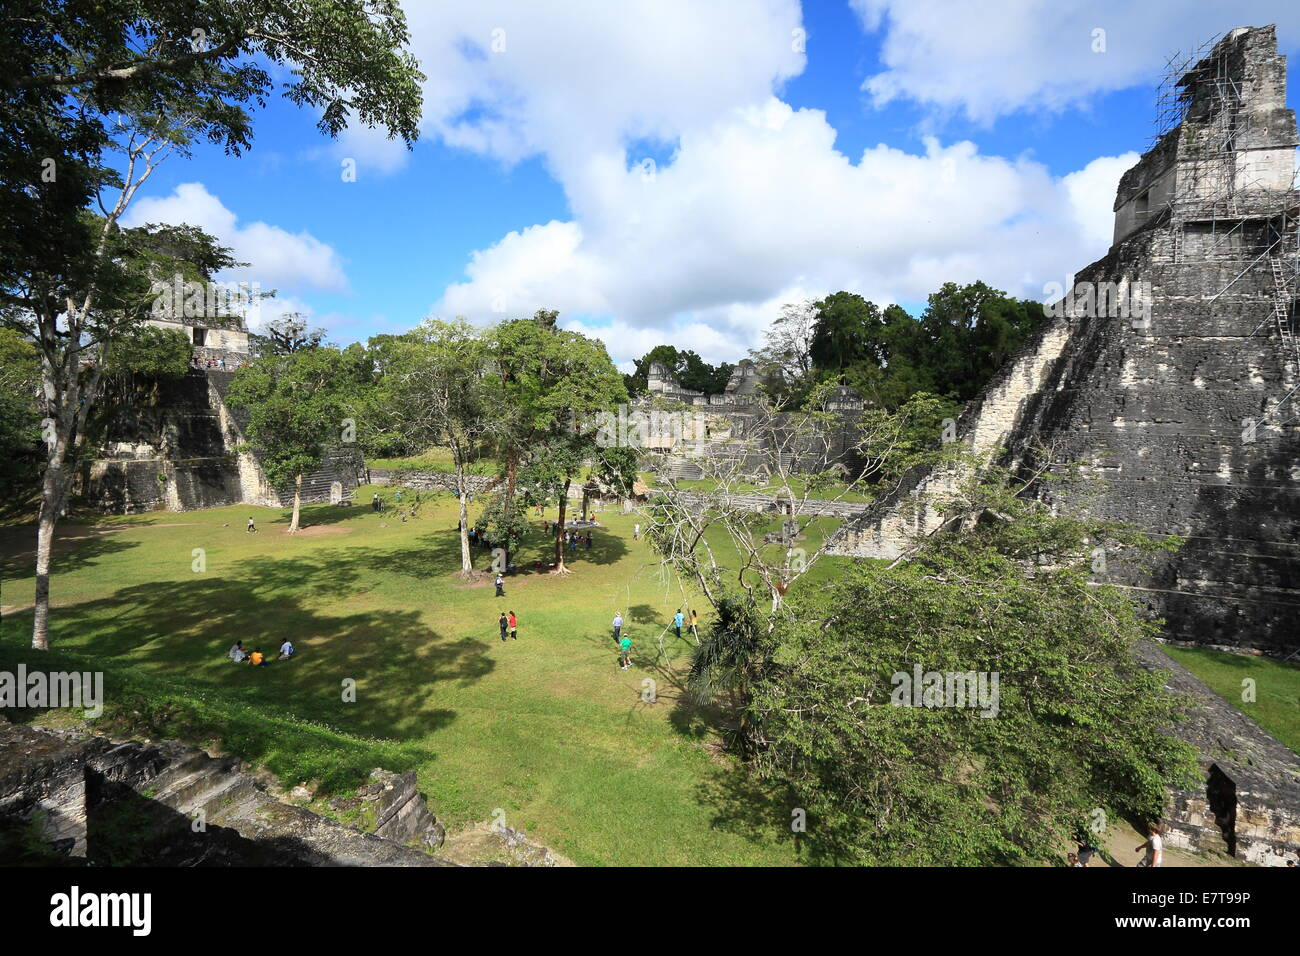 Courtyard surrounded by ruins in the abandoned city of Tikal, a popular National Park in Guatemala. - Stock Image